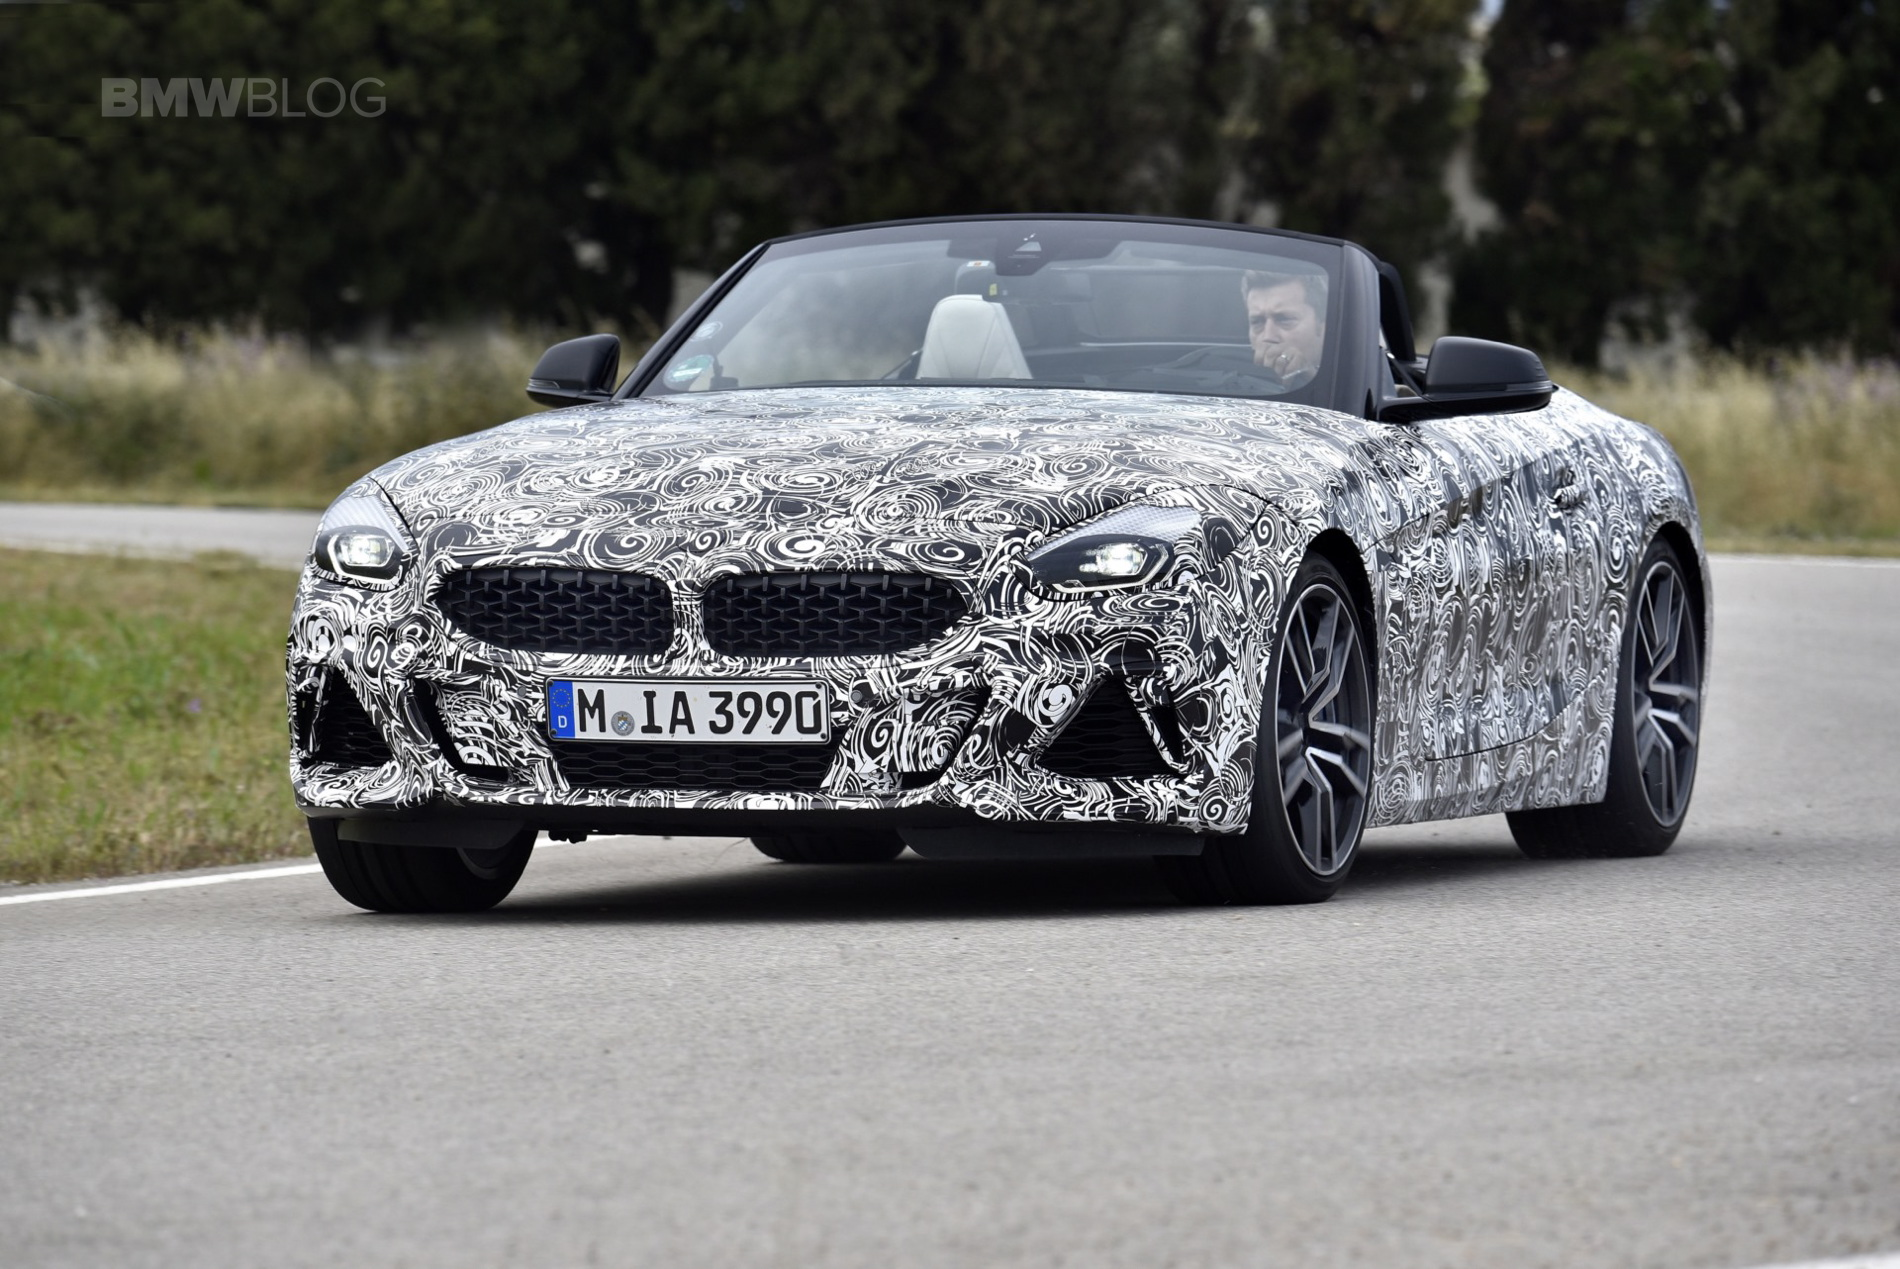 First Drive New Bmw G29 Z4 M40i In Pre Production Clothes